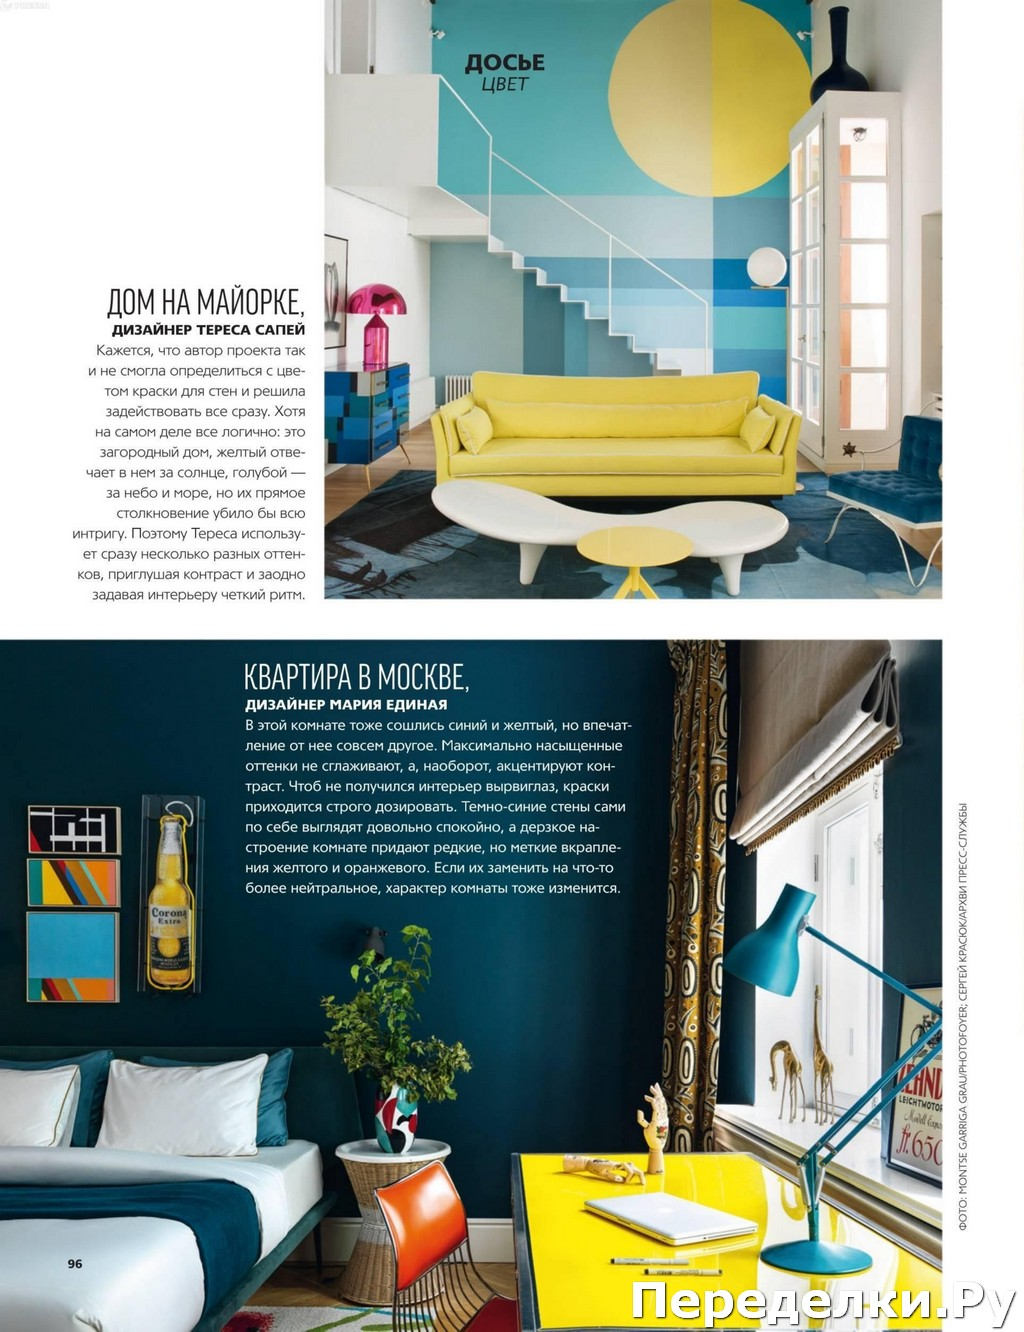 AD Architectural Digest 4 aprel 2020 93